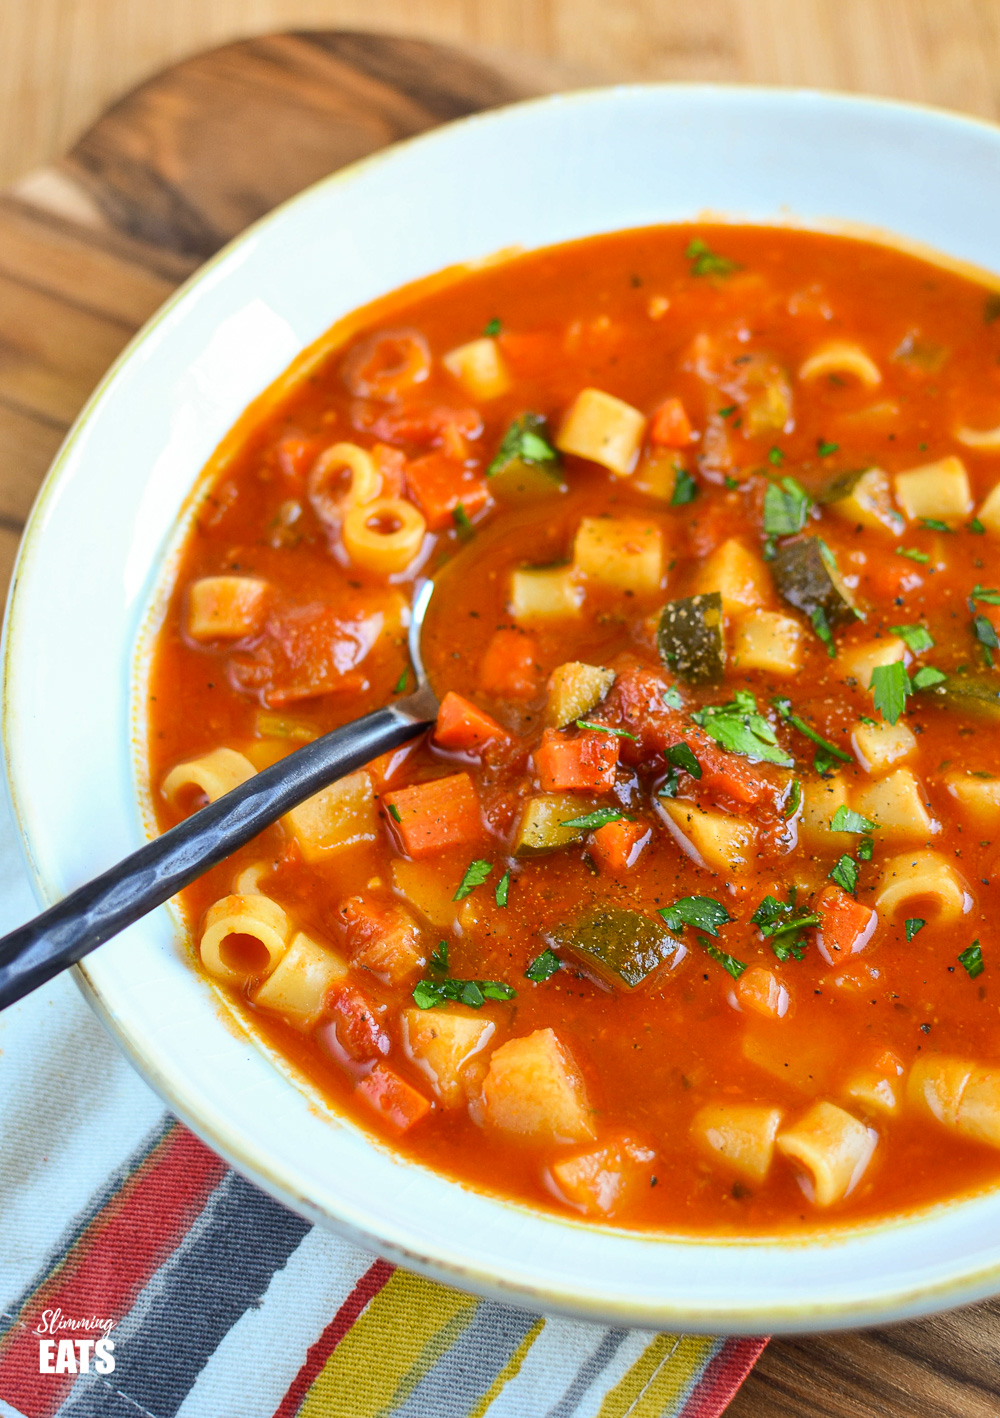 white bowl of minestrone soup with black handled spoon